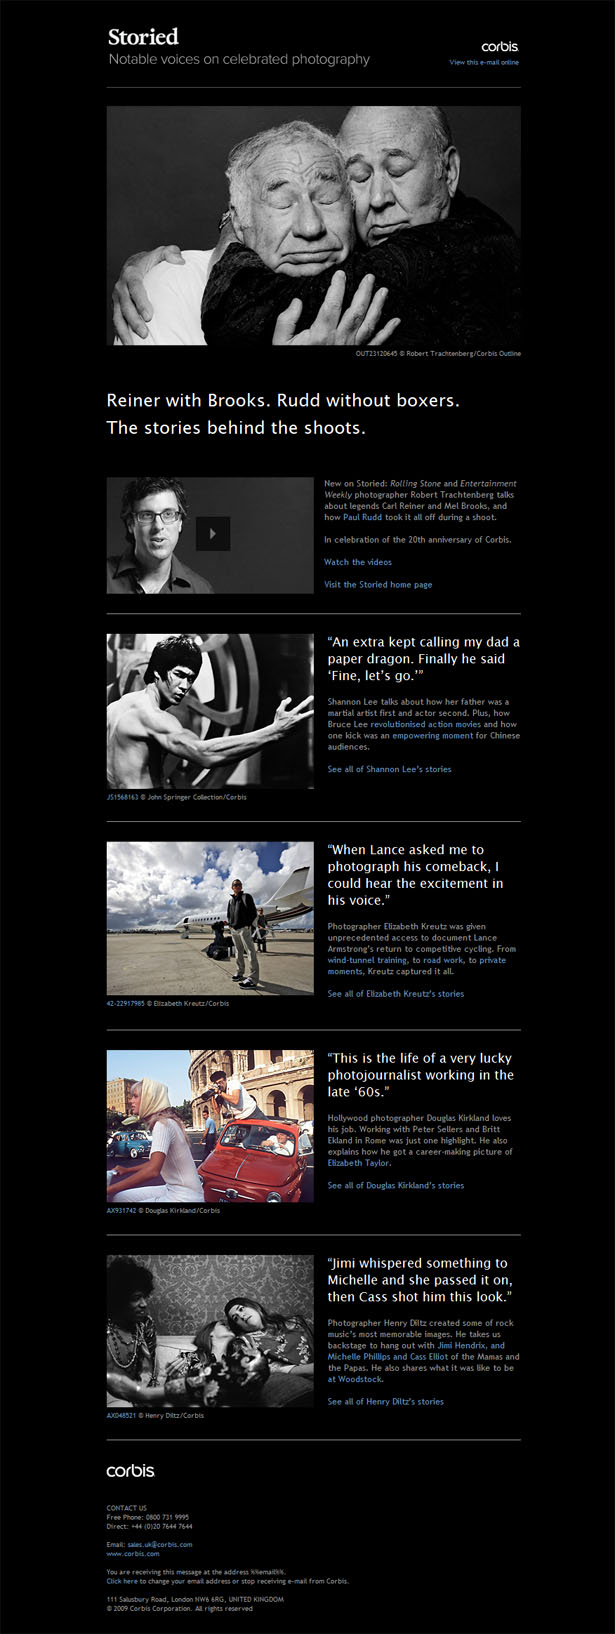 Email newsletter designs: Storied